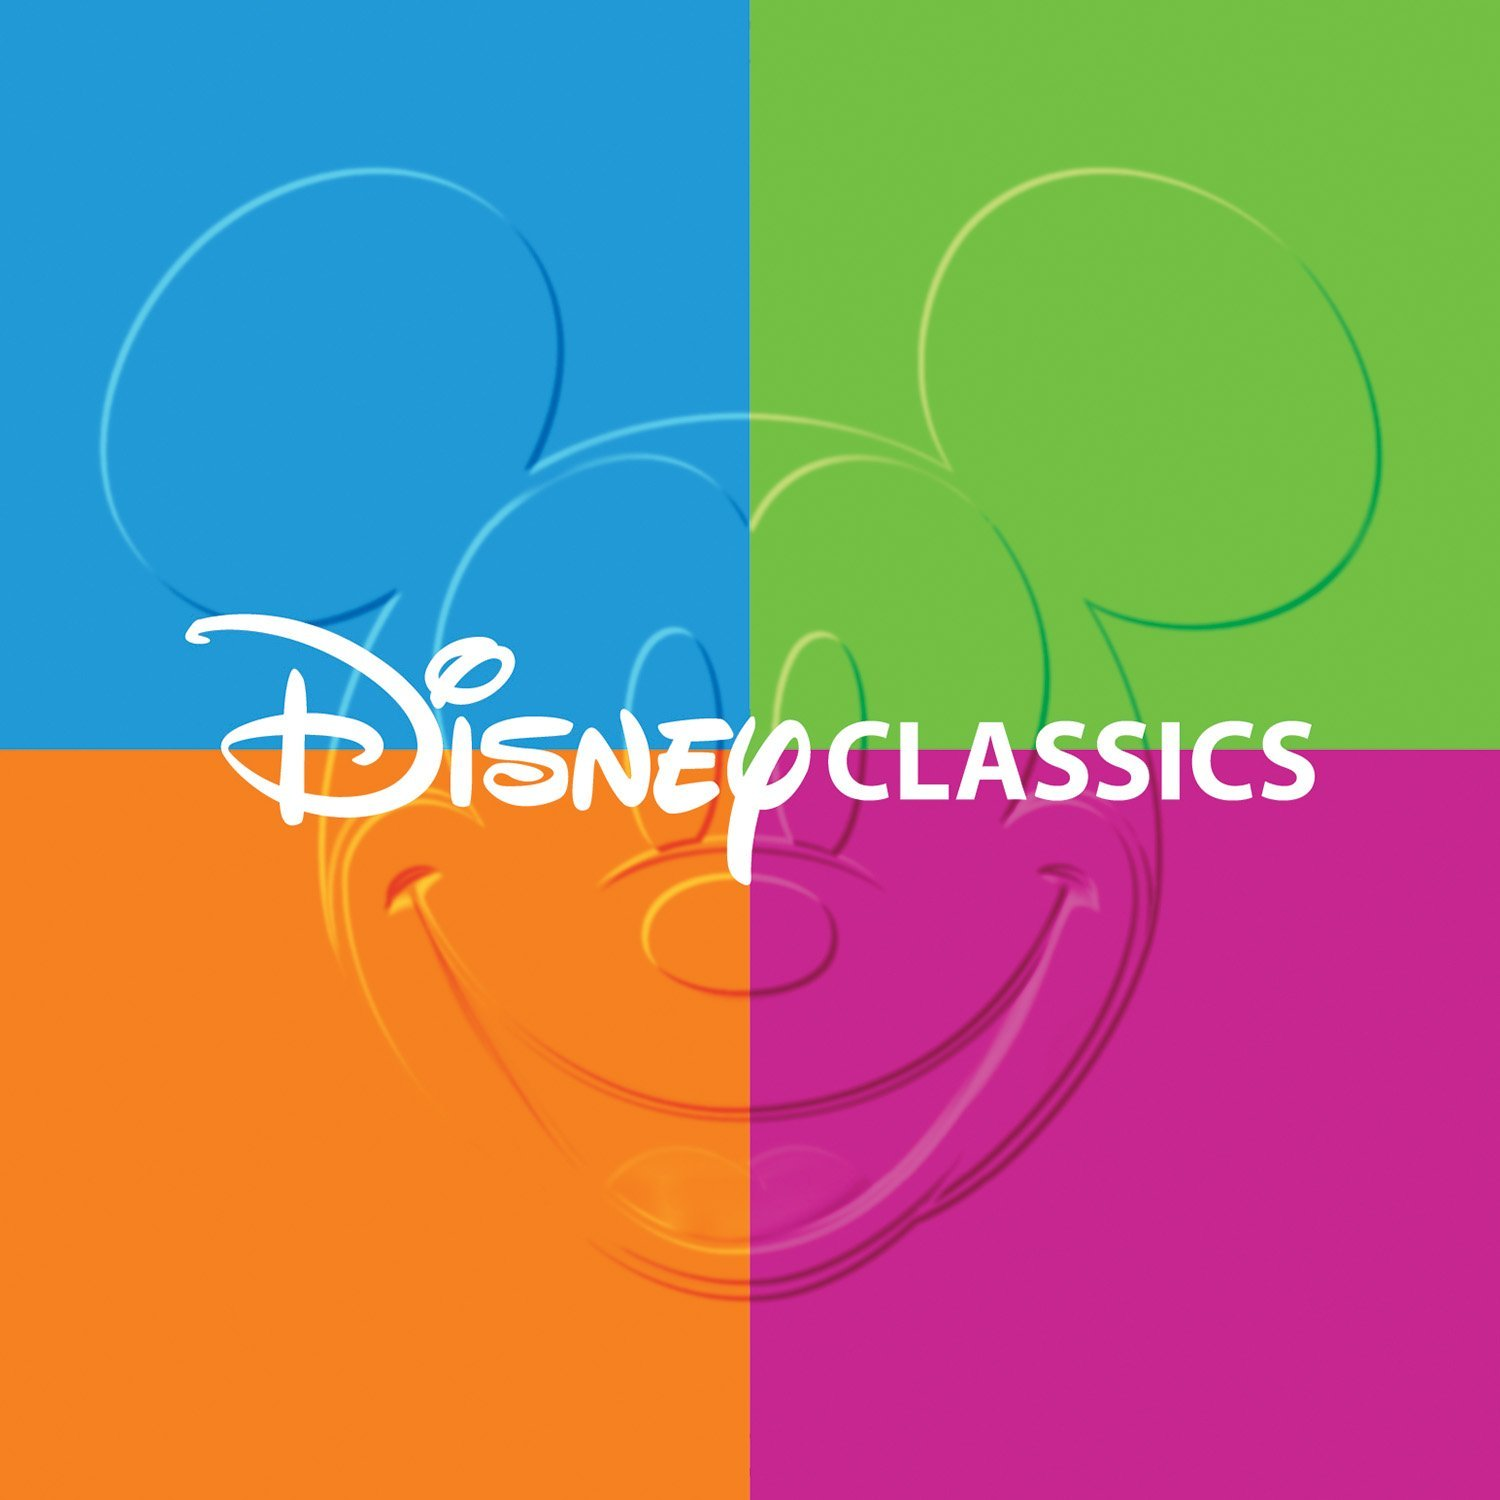 Disney Classics Disney Wiki Fandom Powered By Wikia